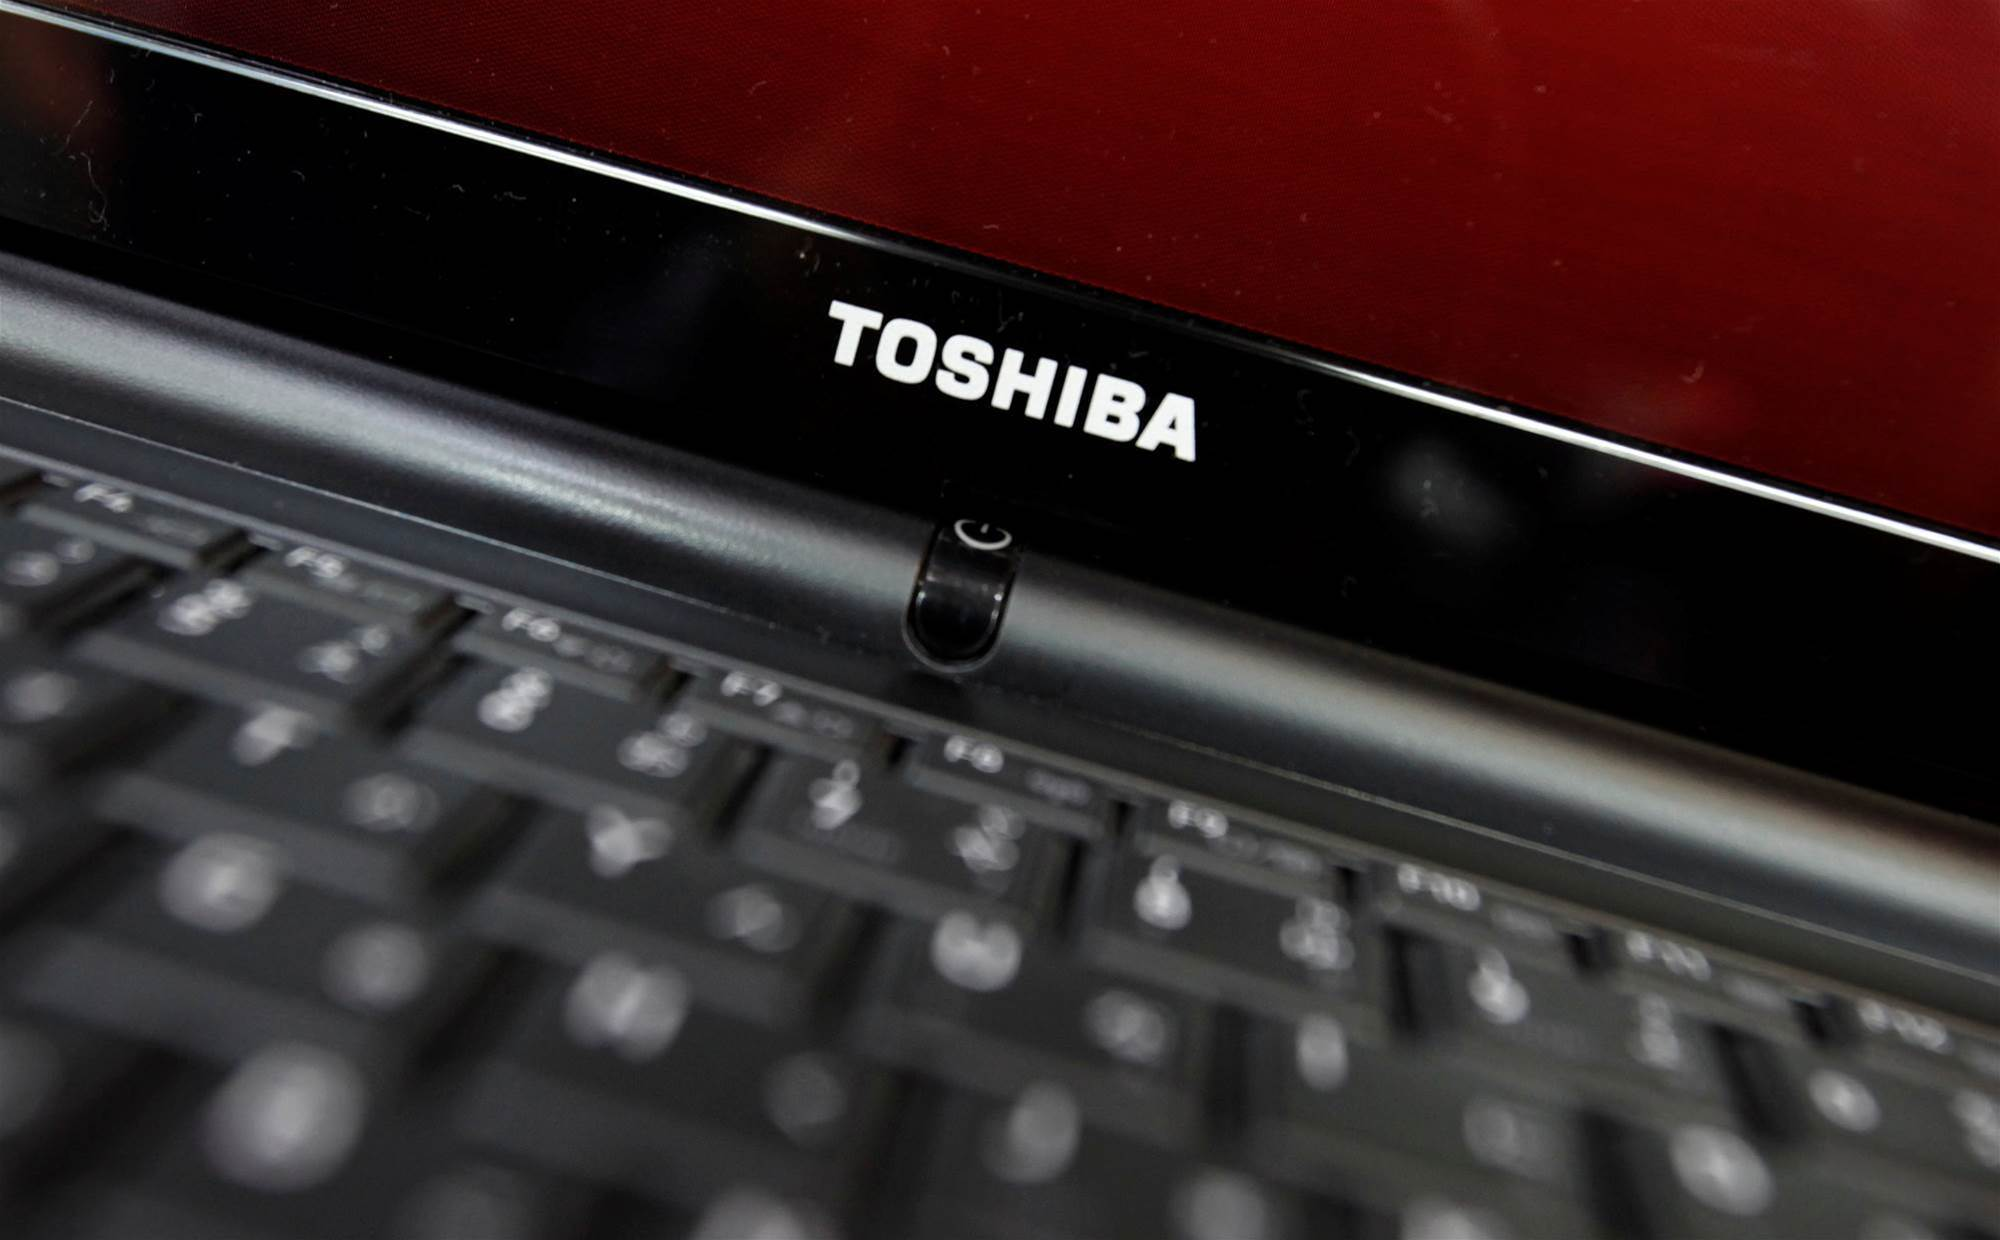 Sharp confirms it's buying Toshiba's PC business for $47 million